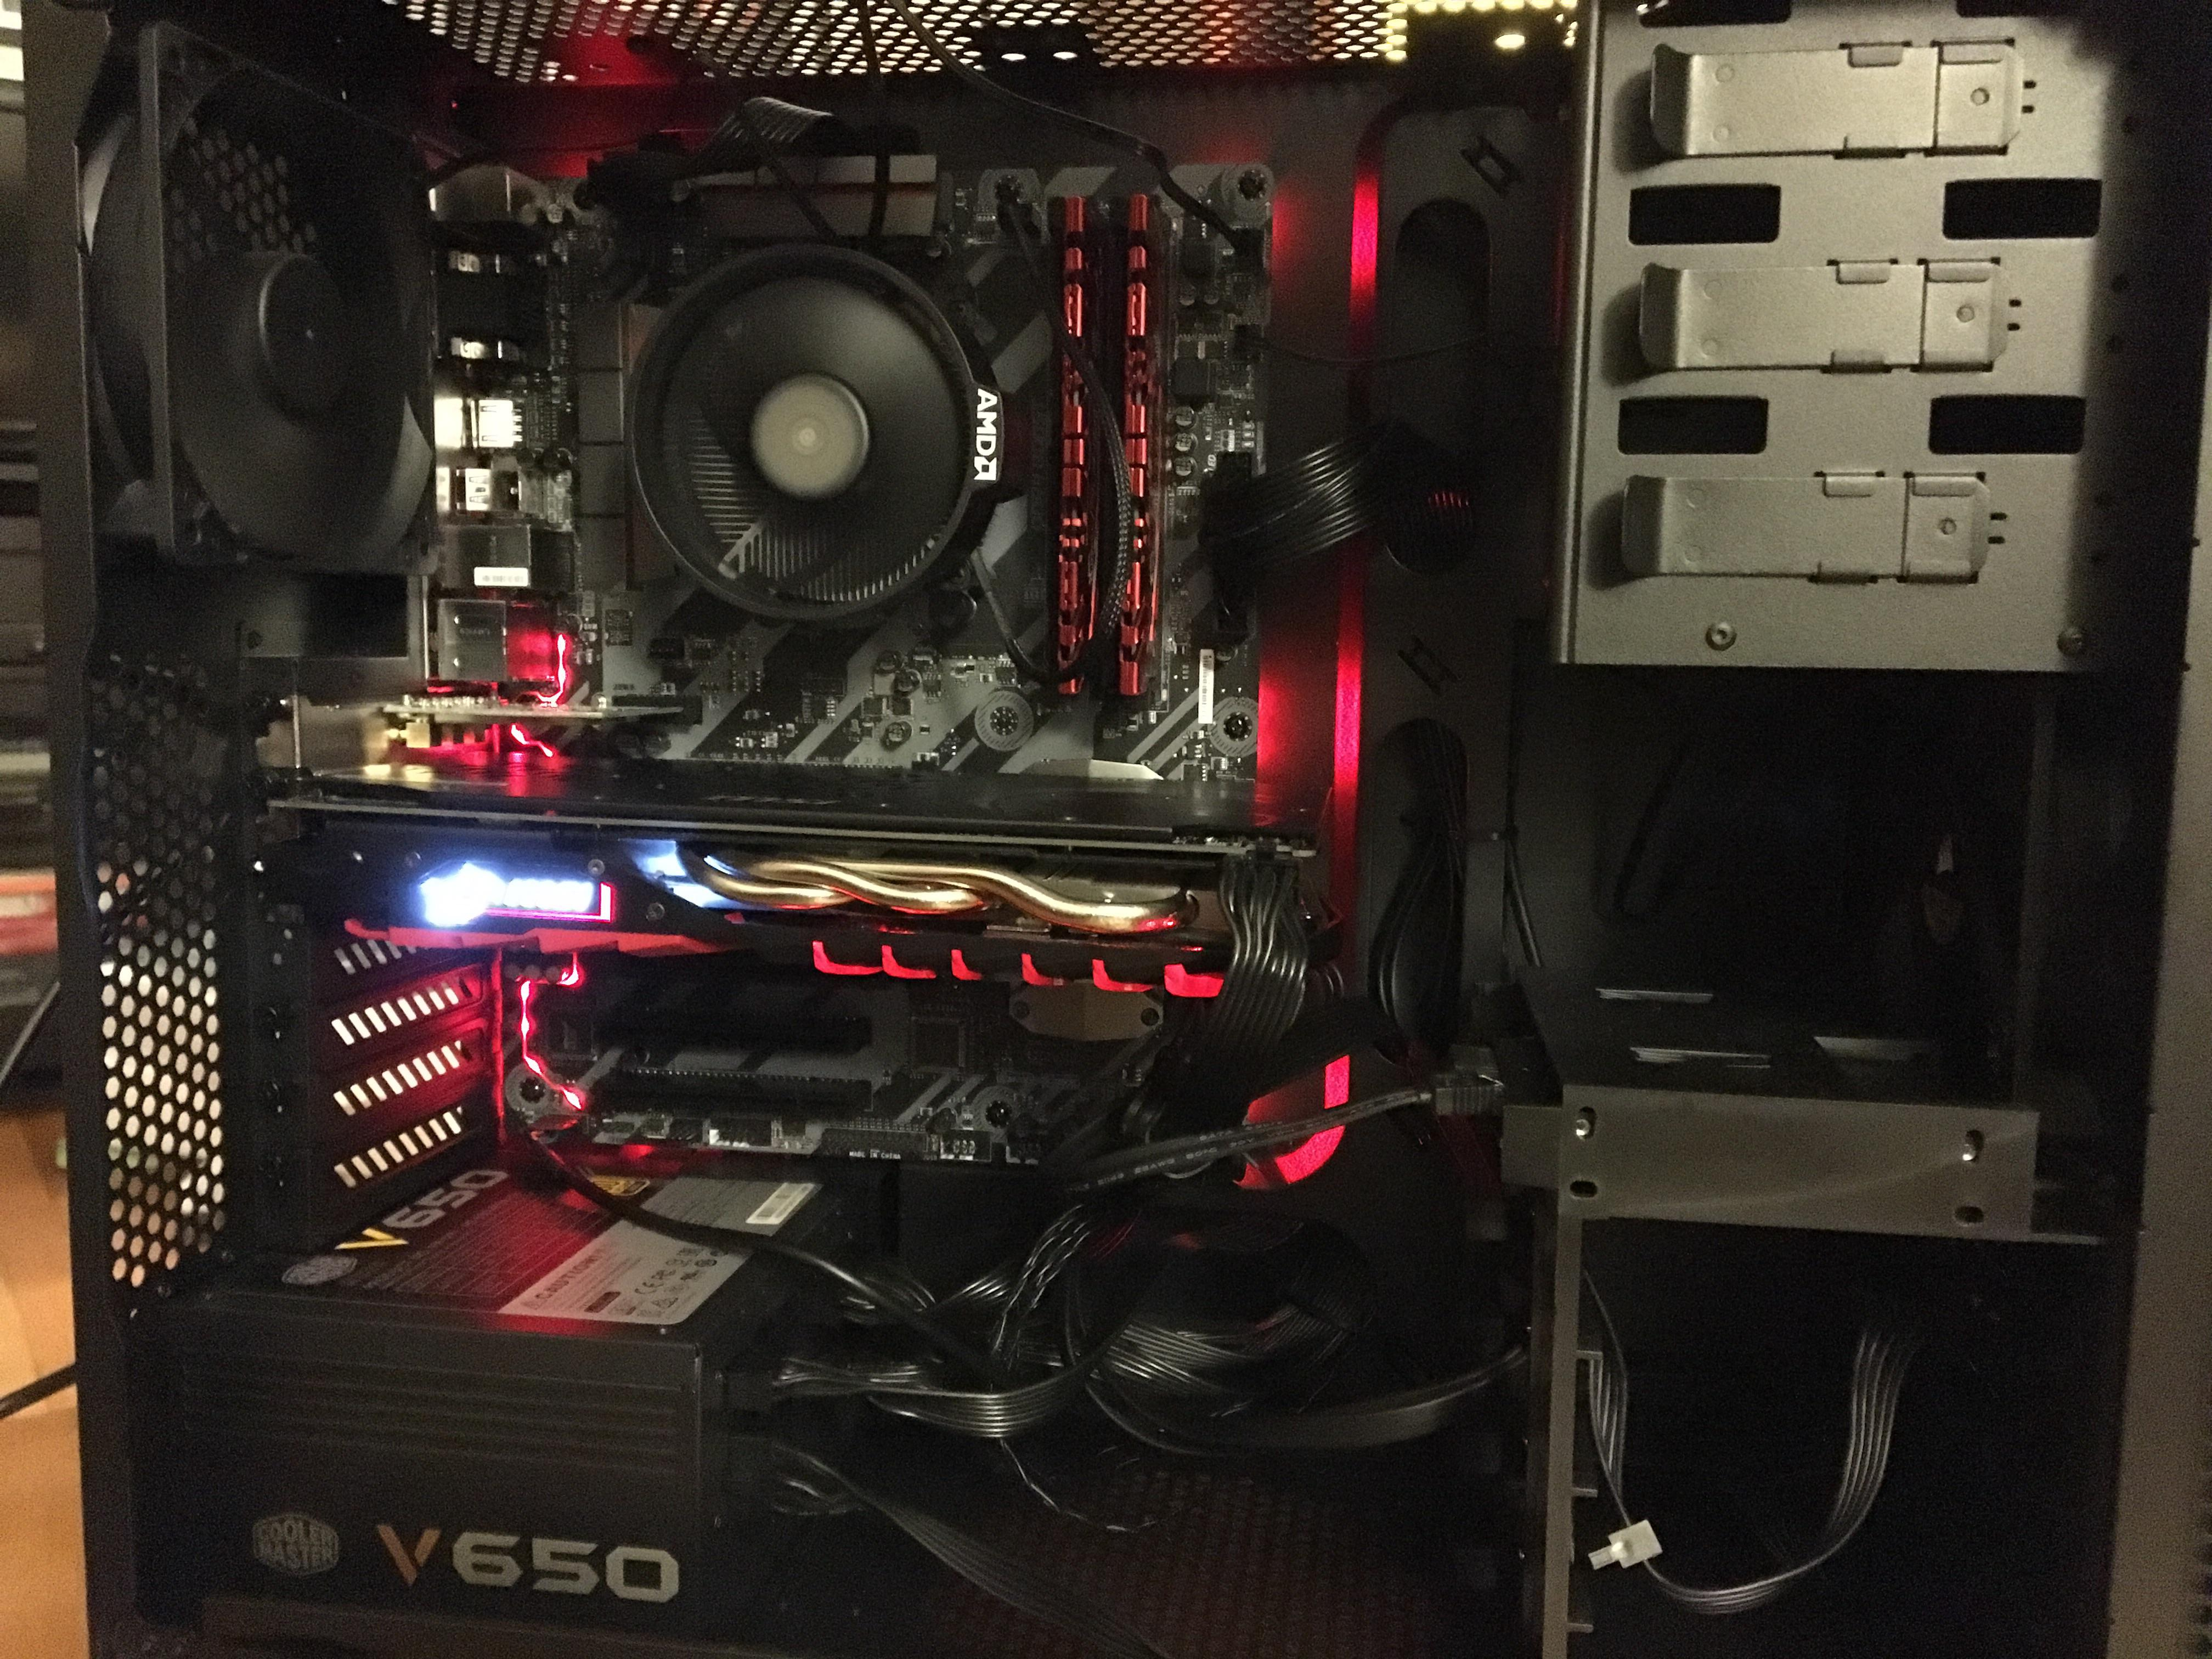 Adorable Build Came Early This Ascending A Ryzen Gb Ram Good A Rx Came Early This Ascending A Ryzen Gb Is 16 Gigs Ram Enough Is 16 Gigs dpreview 16 Gigs Of Ram